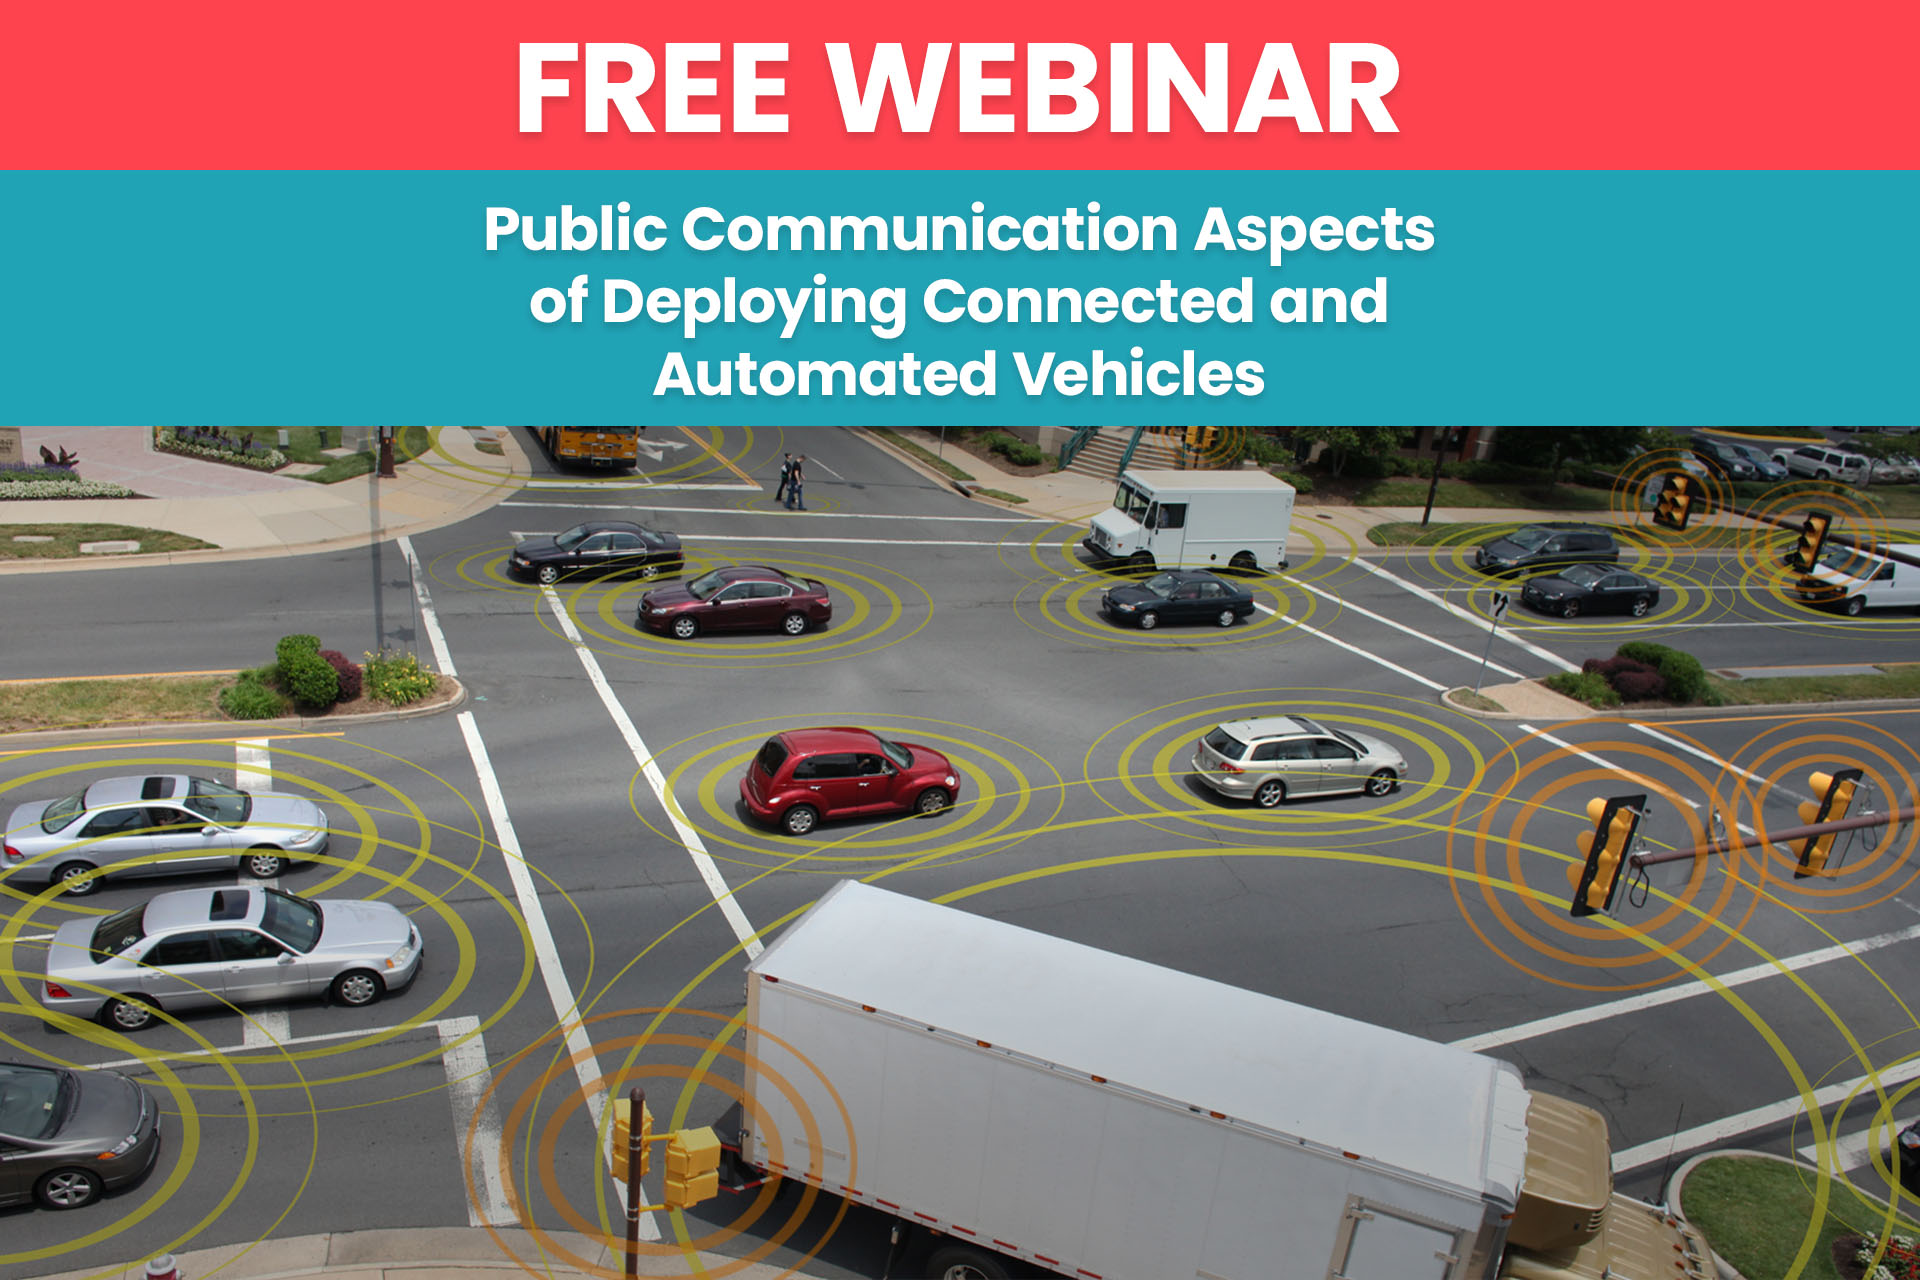 Webinar: Public Communication Aspects of Deploying Connected and Automated Vehicles